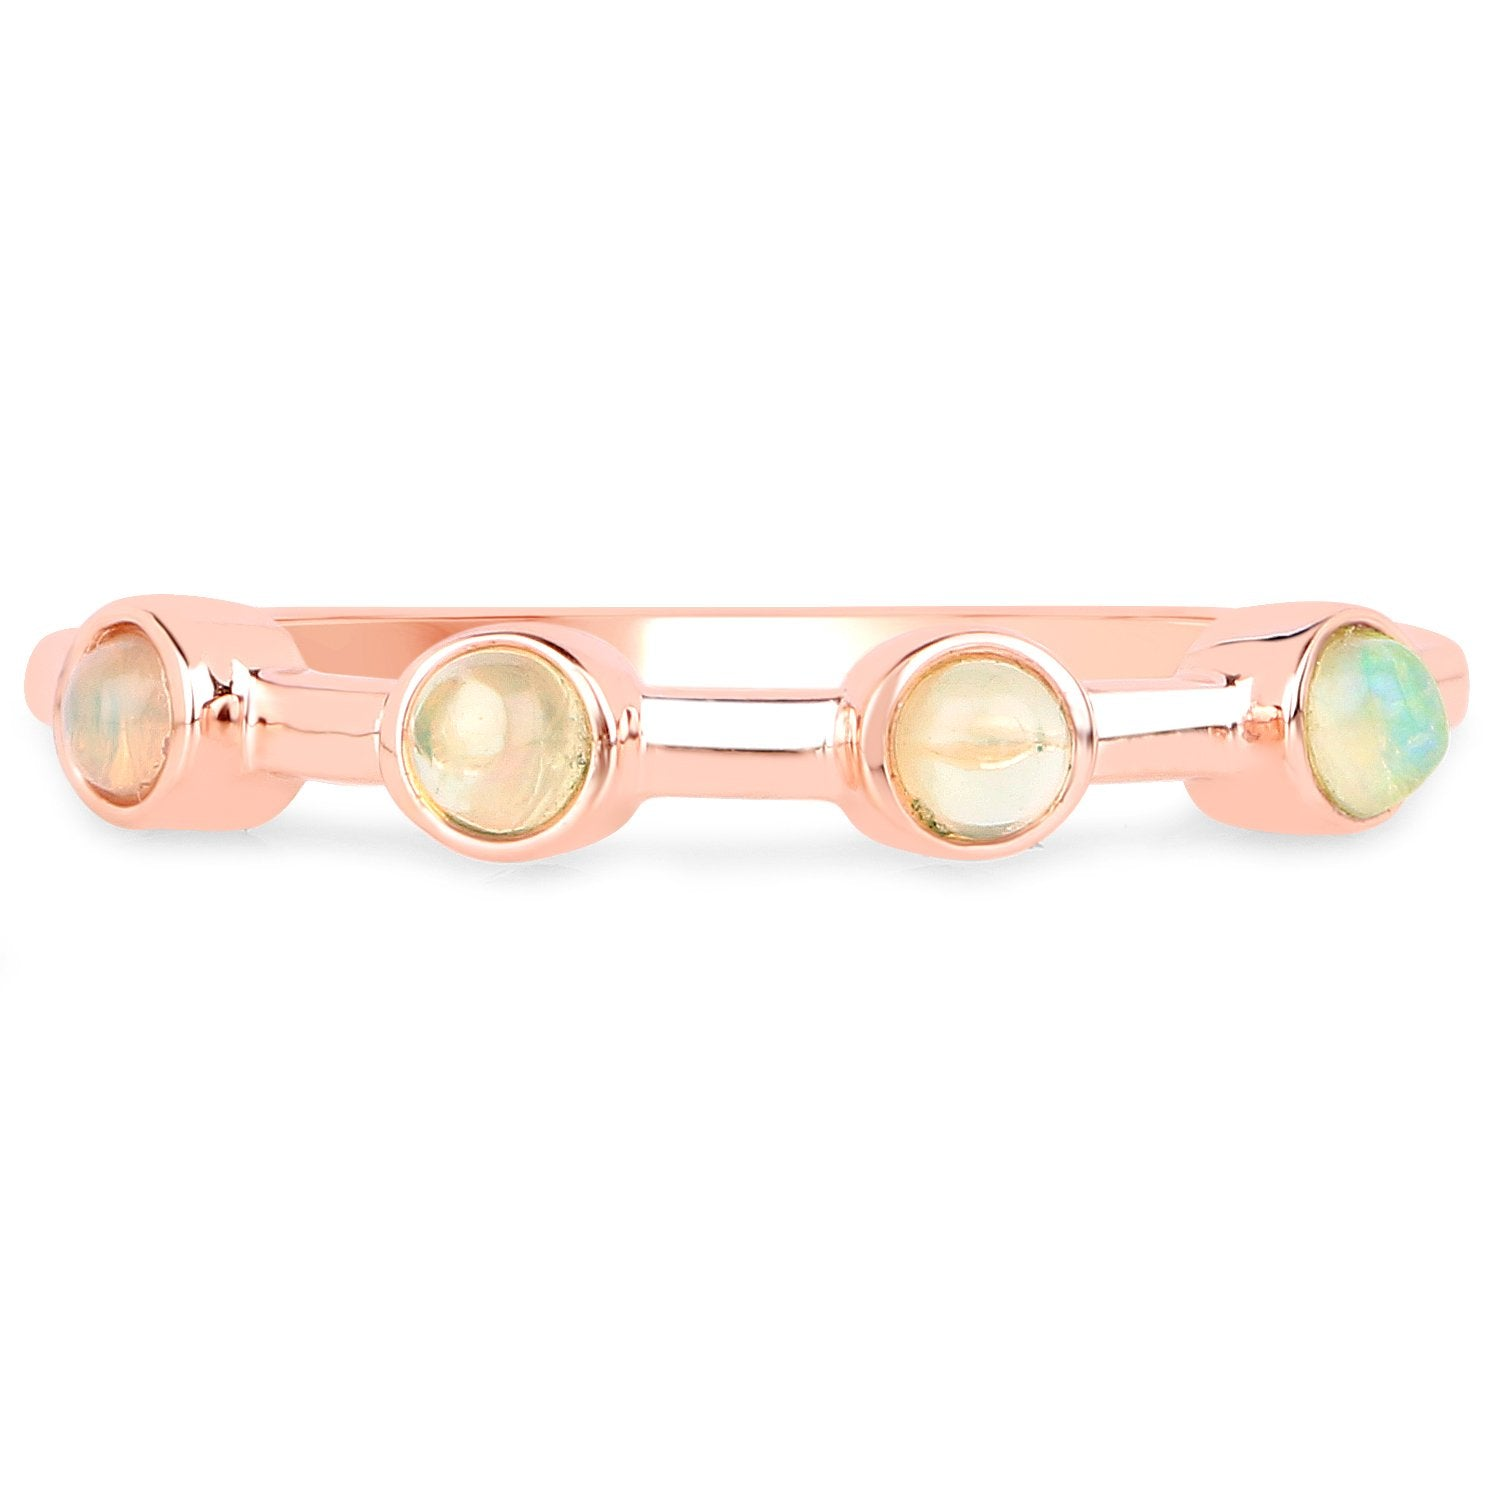 LoveHuang 0.15 Carats Genuine Ethiopian Opal Ring Solid .925 Sterling Silver With 18KT Rose Gold Plating